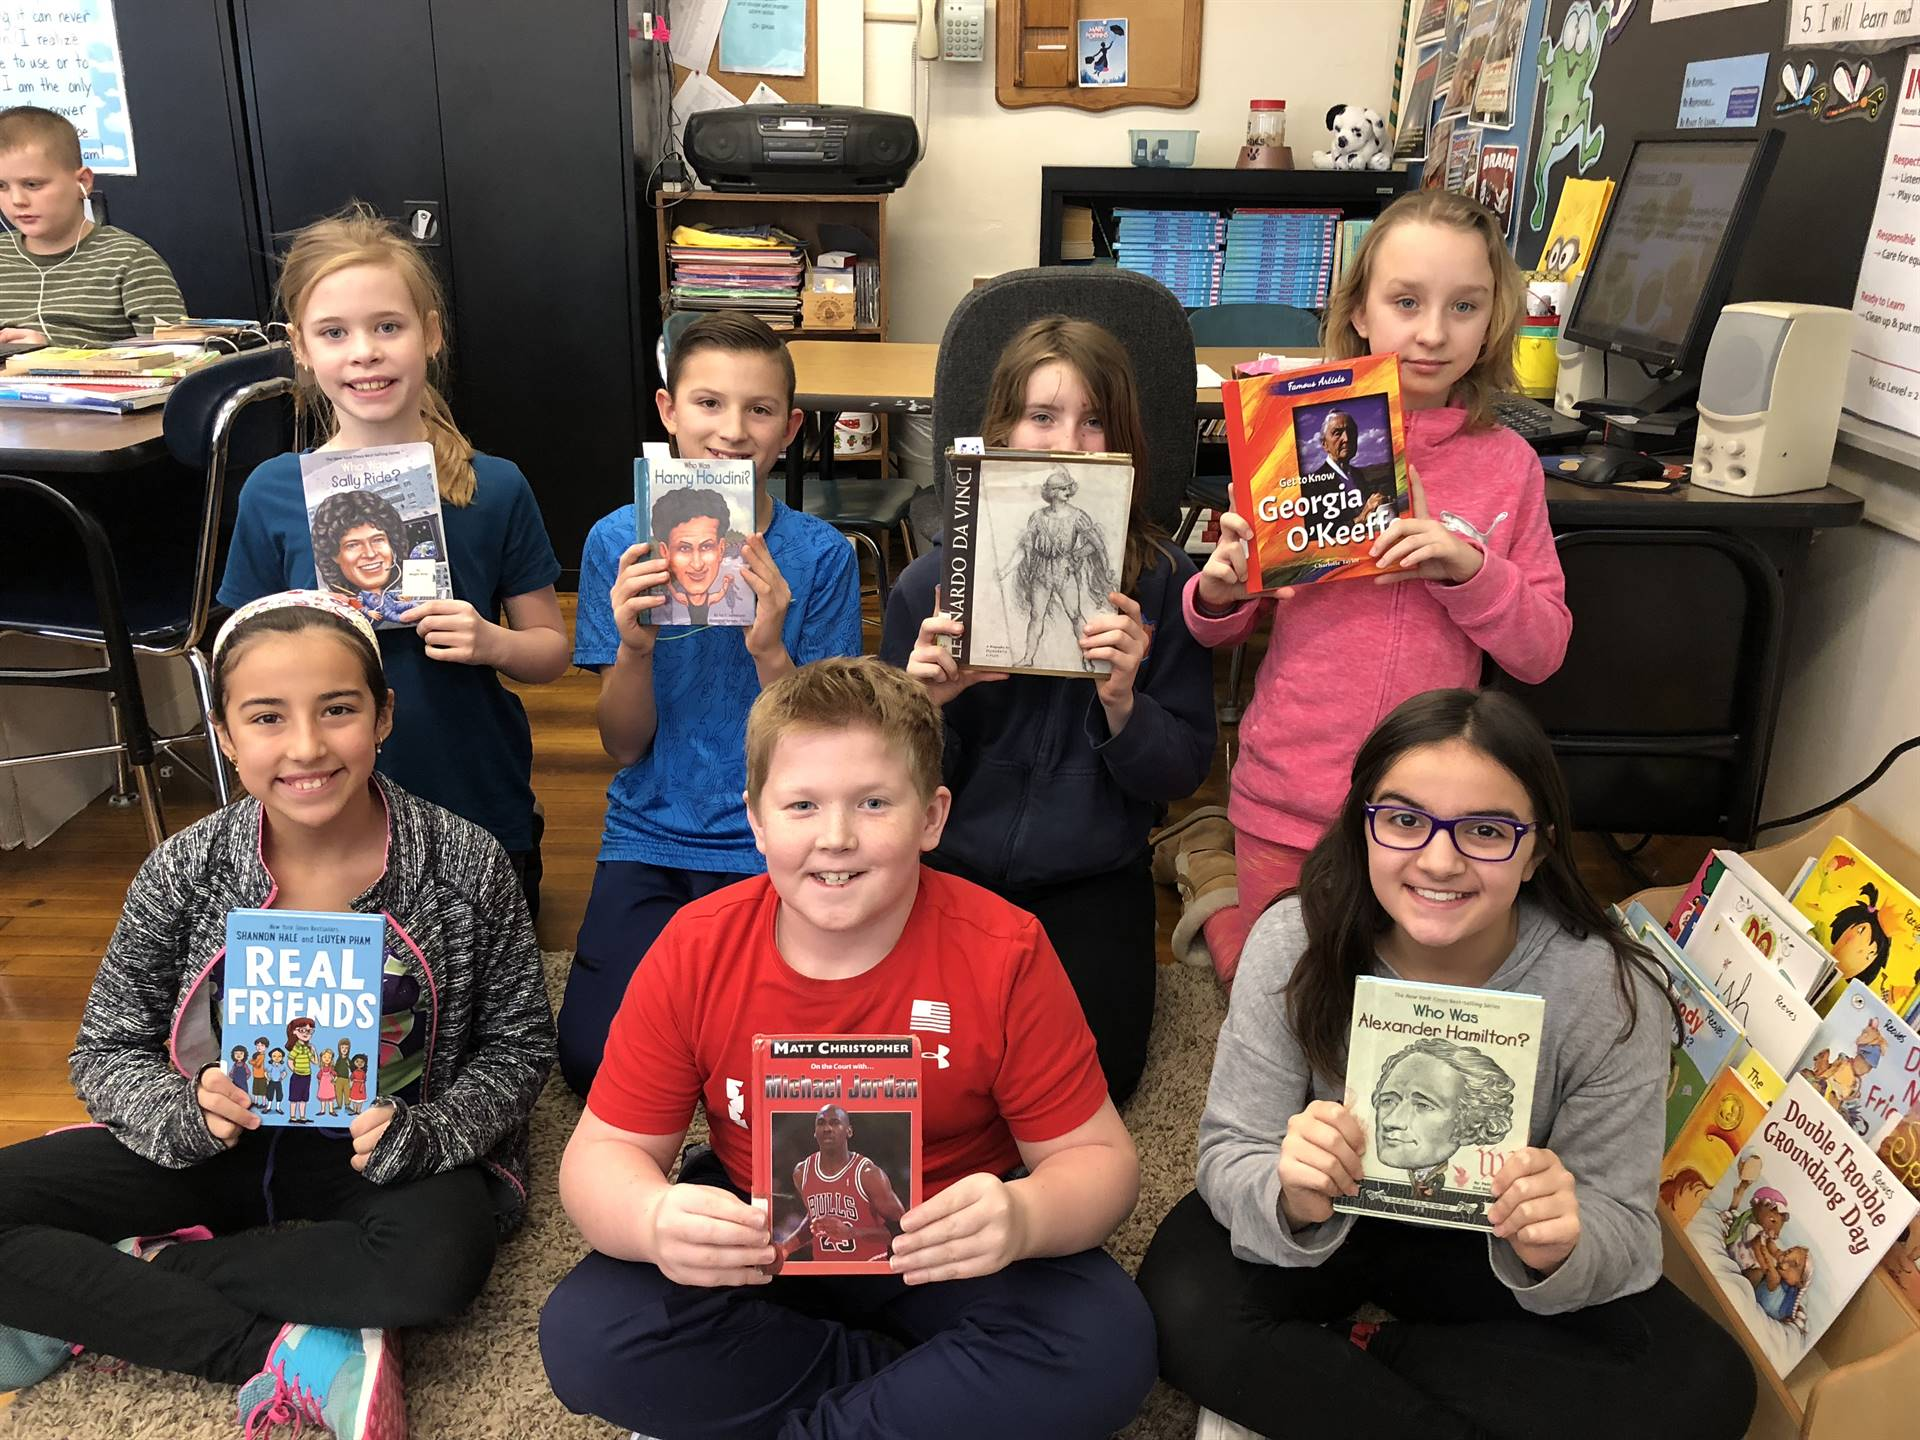 5th grade students with books